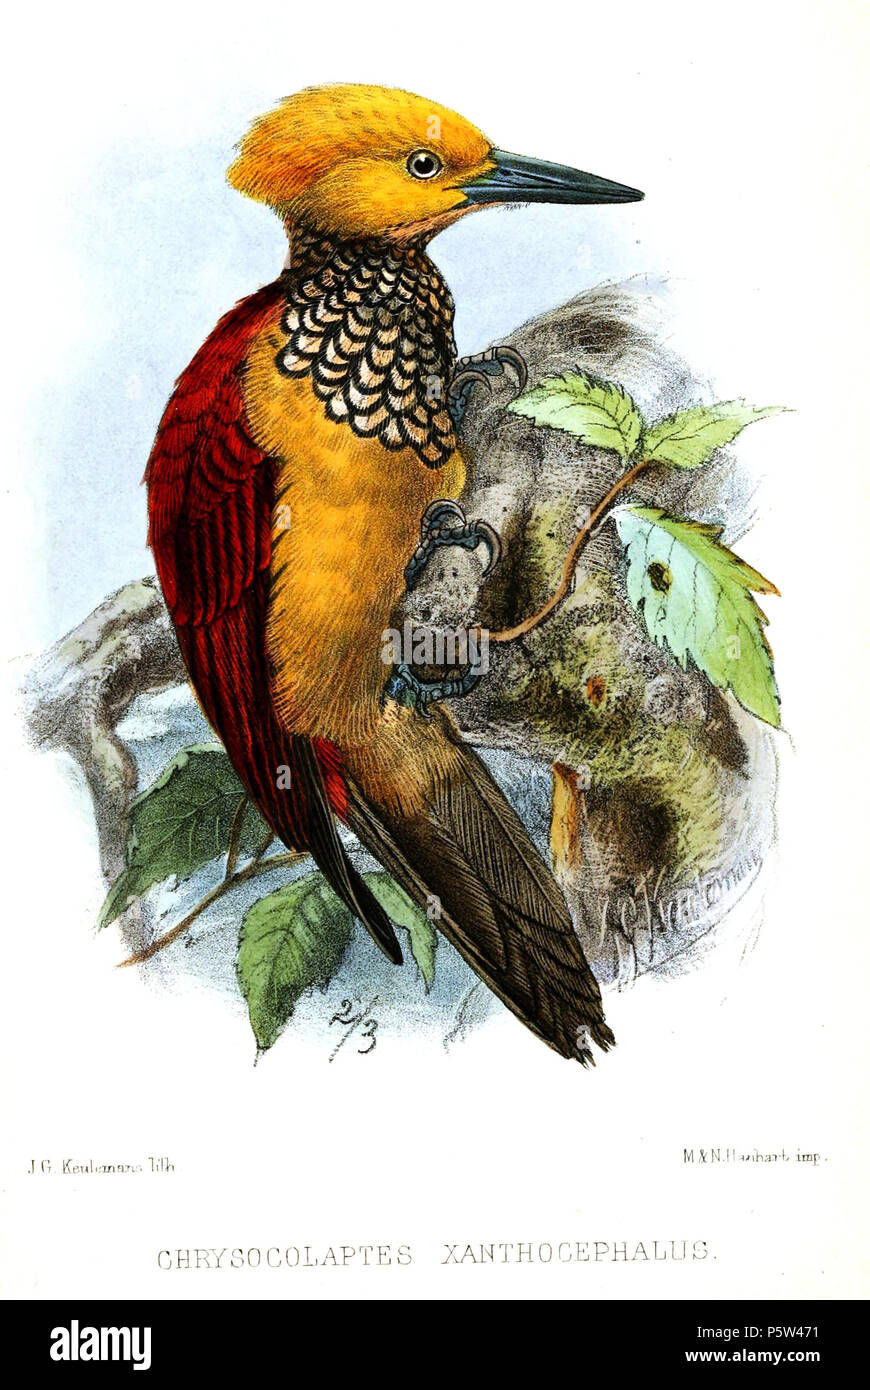 N/A.  English: « Chrysocolaptes xanthocephalus » = Chrysocolaptes xanthocephalus (Yellow-faced Flameback) Français: « Chrysocolaptes xanthocephalus » = Chrysocolaptes xanthocephalus . 1872.   John Gerrard Keulemans  (1842–1912)      Alternative names Johannes Gerardus Keulemans; J. G. Keulemans  Description Dutch ornithologist and artist  Date of birth/death 8 June 1842 29 December 1912  Location of birth/death Rotterdam London  Authority control  : Q1335286 VIAF:42113661 ISNI:0000 0000 6313 981X ULAN:500041975 LCCN:no98083374 NLA:35268760 WorldCat 346 ChrysocolaptesXanthocephalusKeulemans - Stock Image